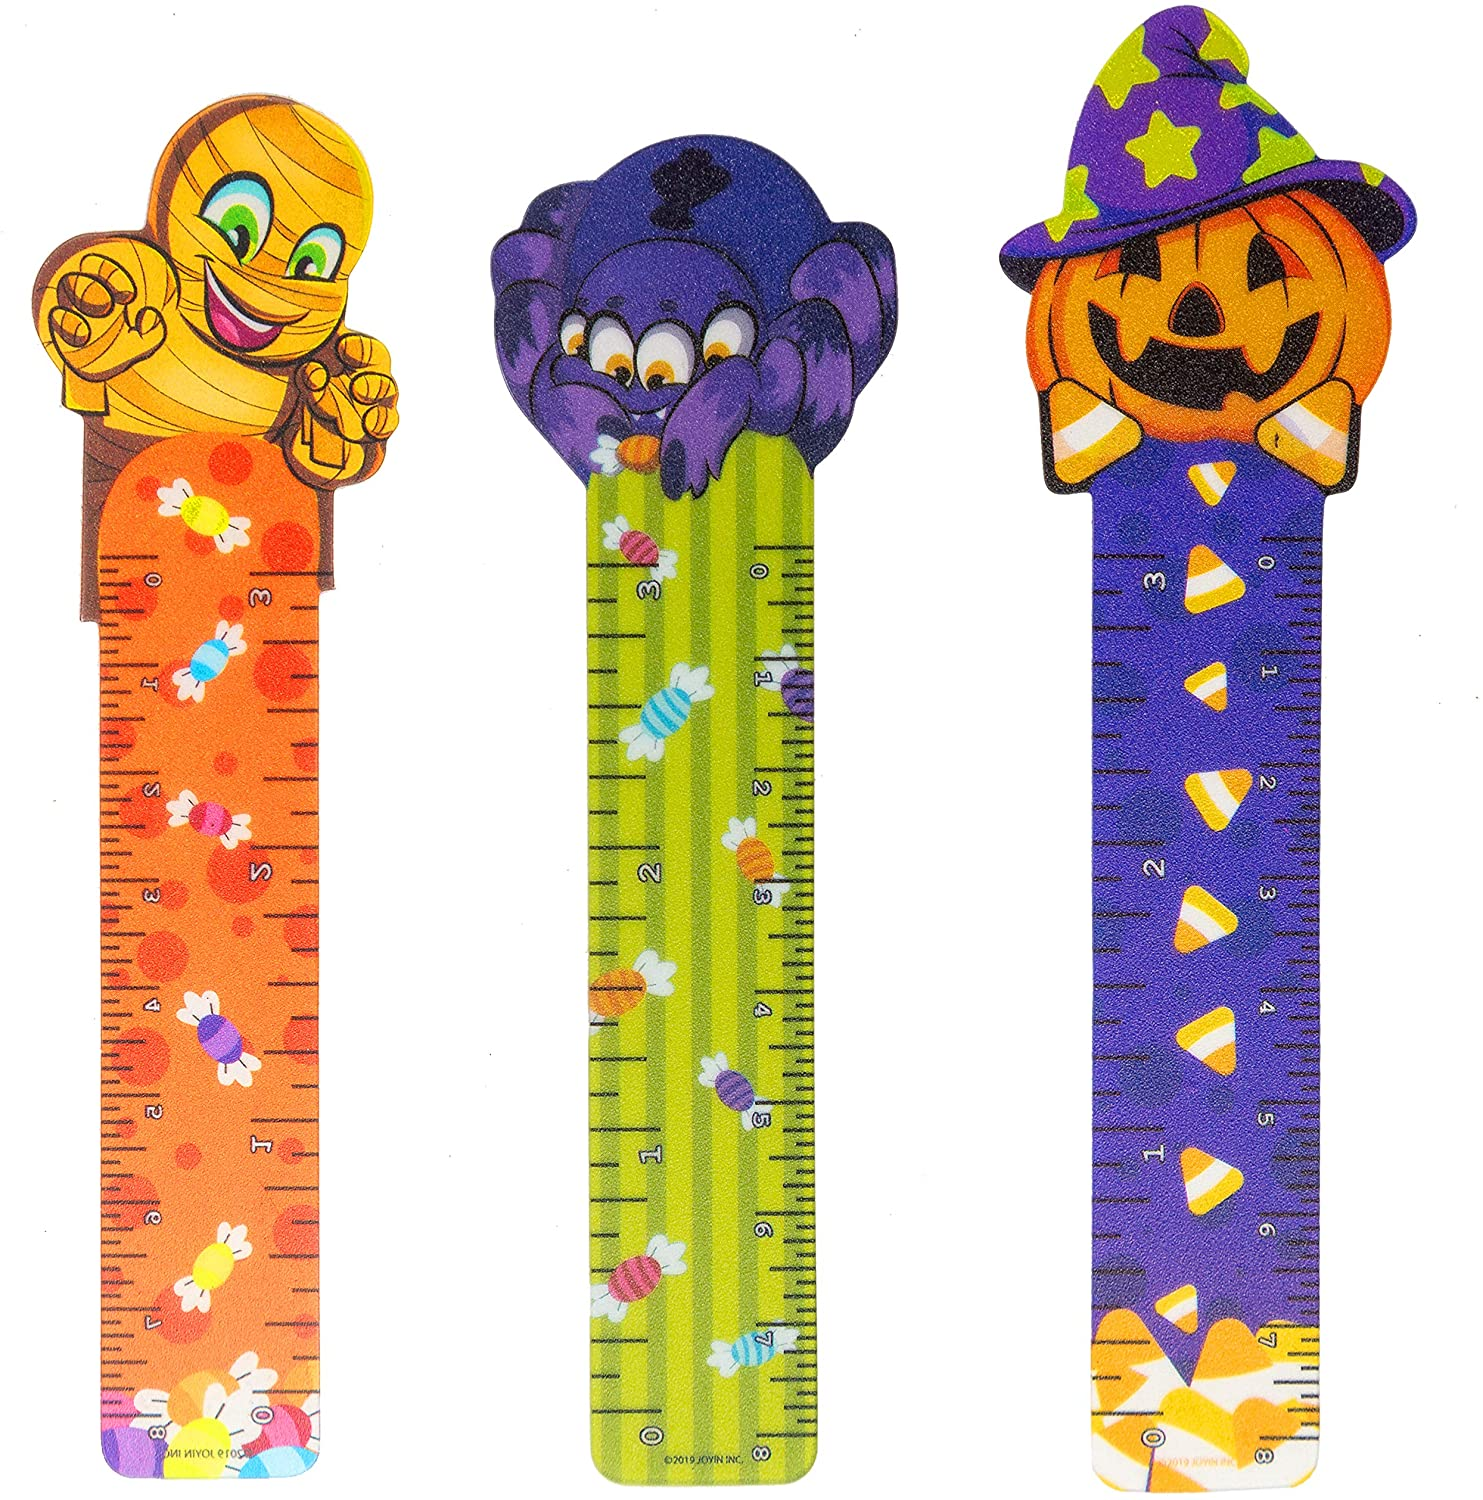 Halloween bookmarks decorated with mummies, spiders, and pumpkins